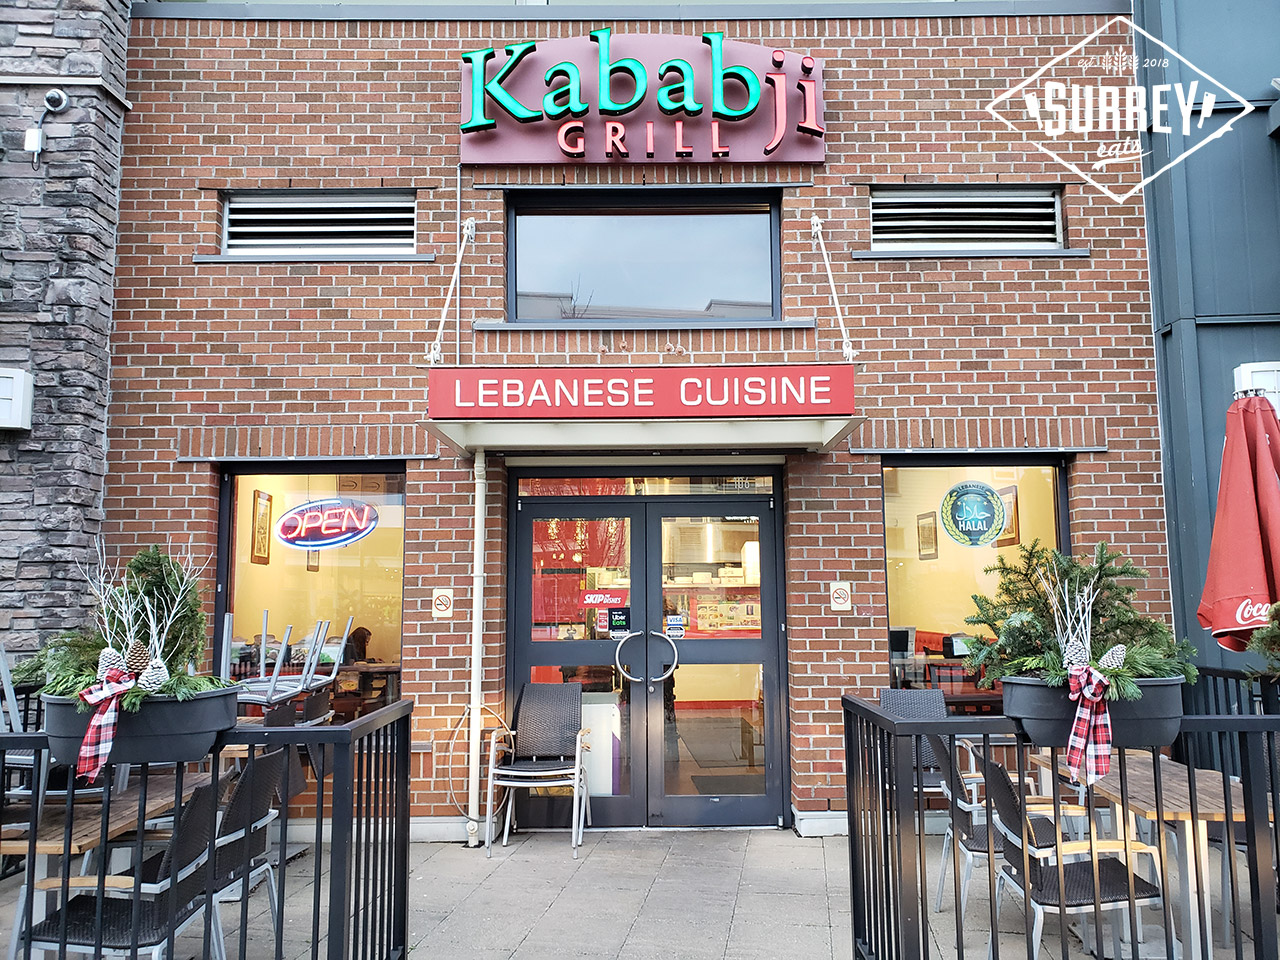 Kababji Grill Lebanese Cuisine in South Surrey at Morgan Crossing